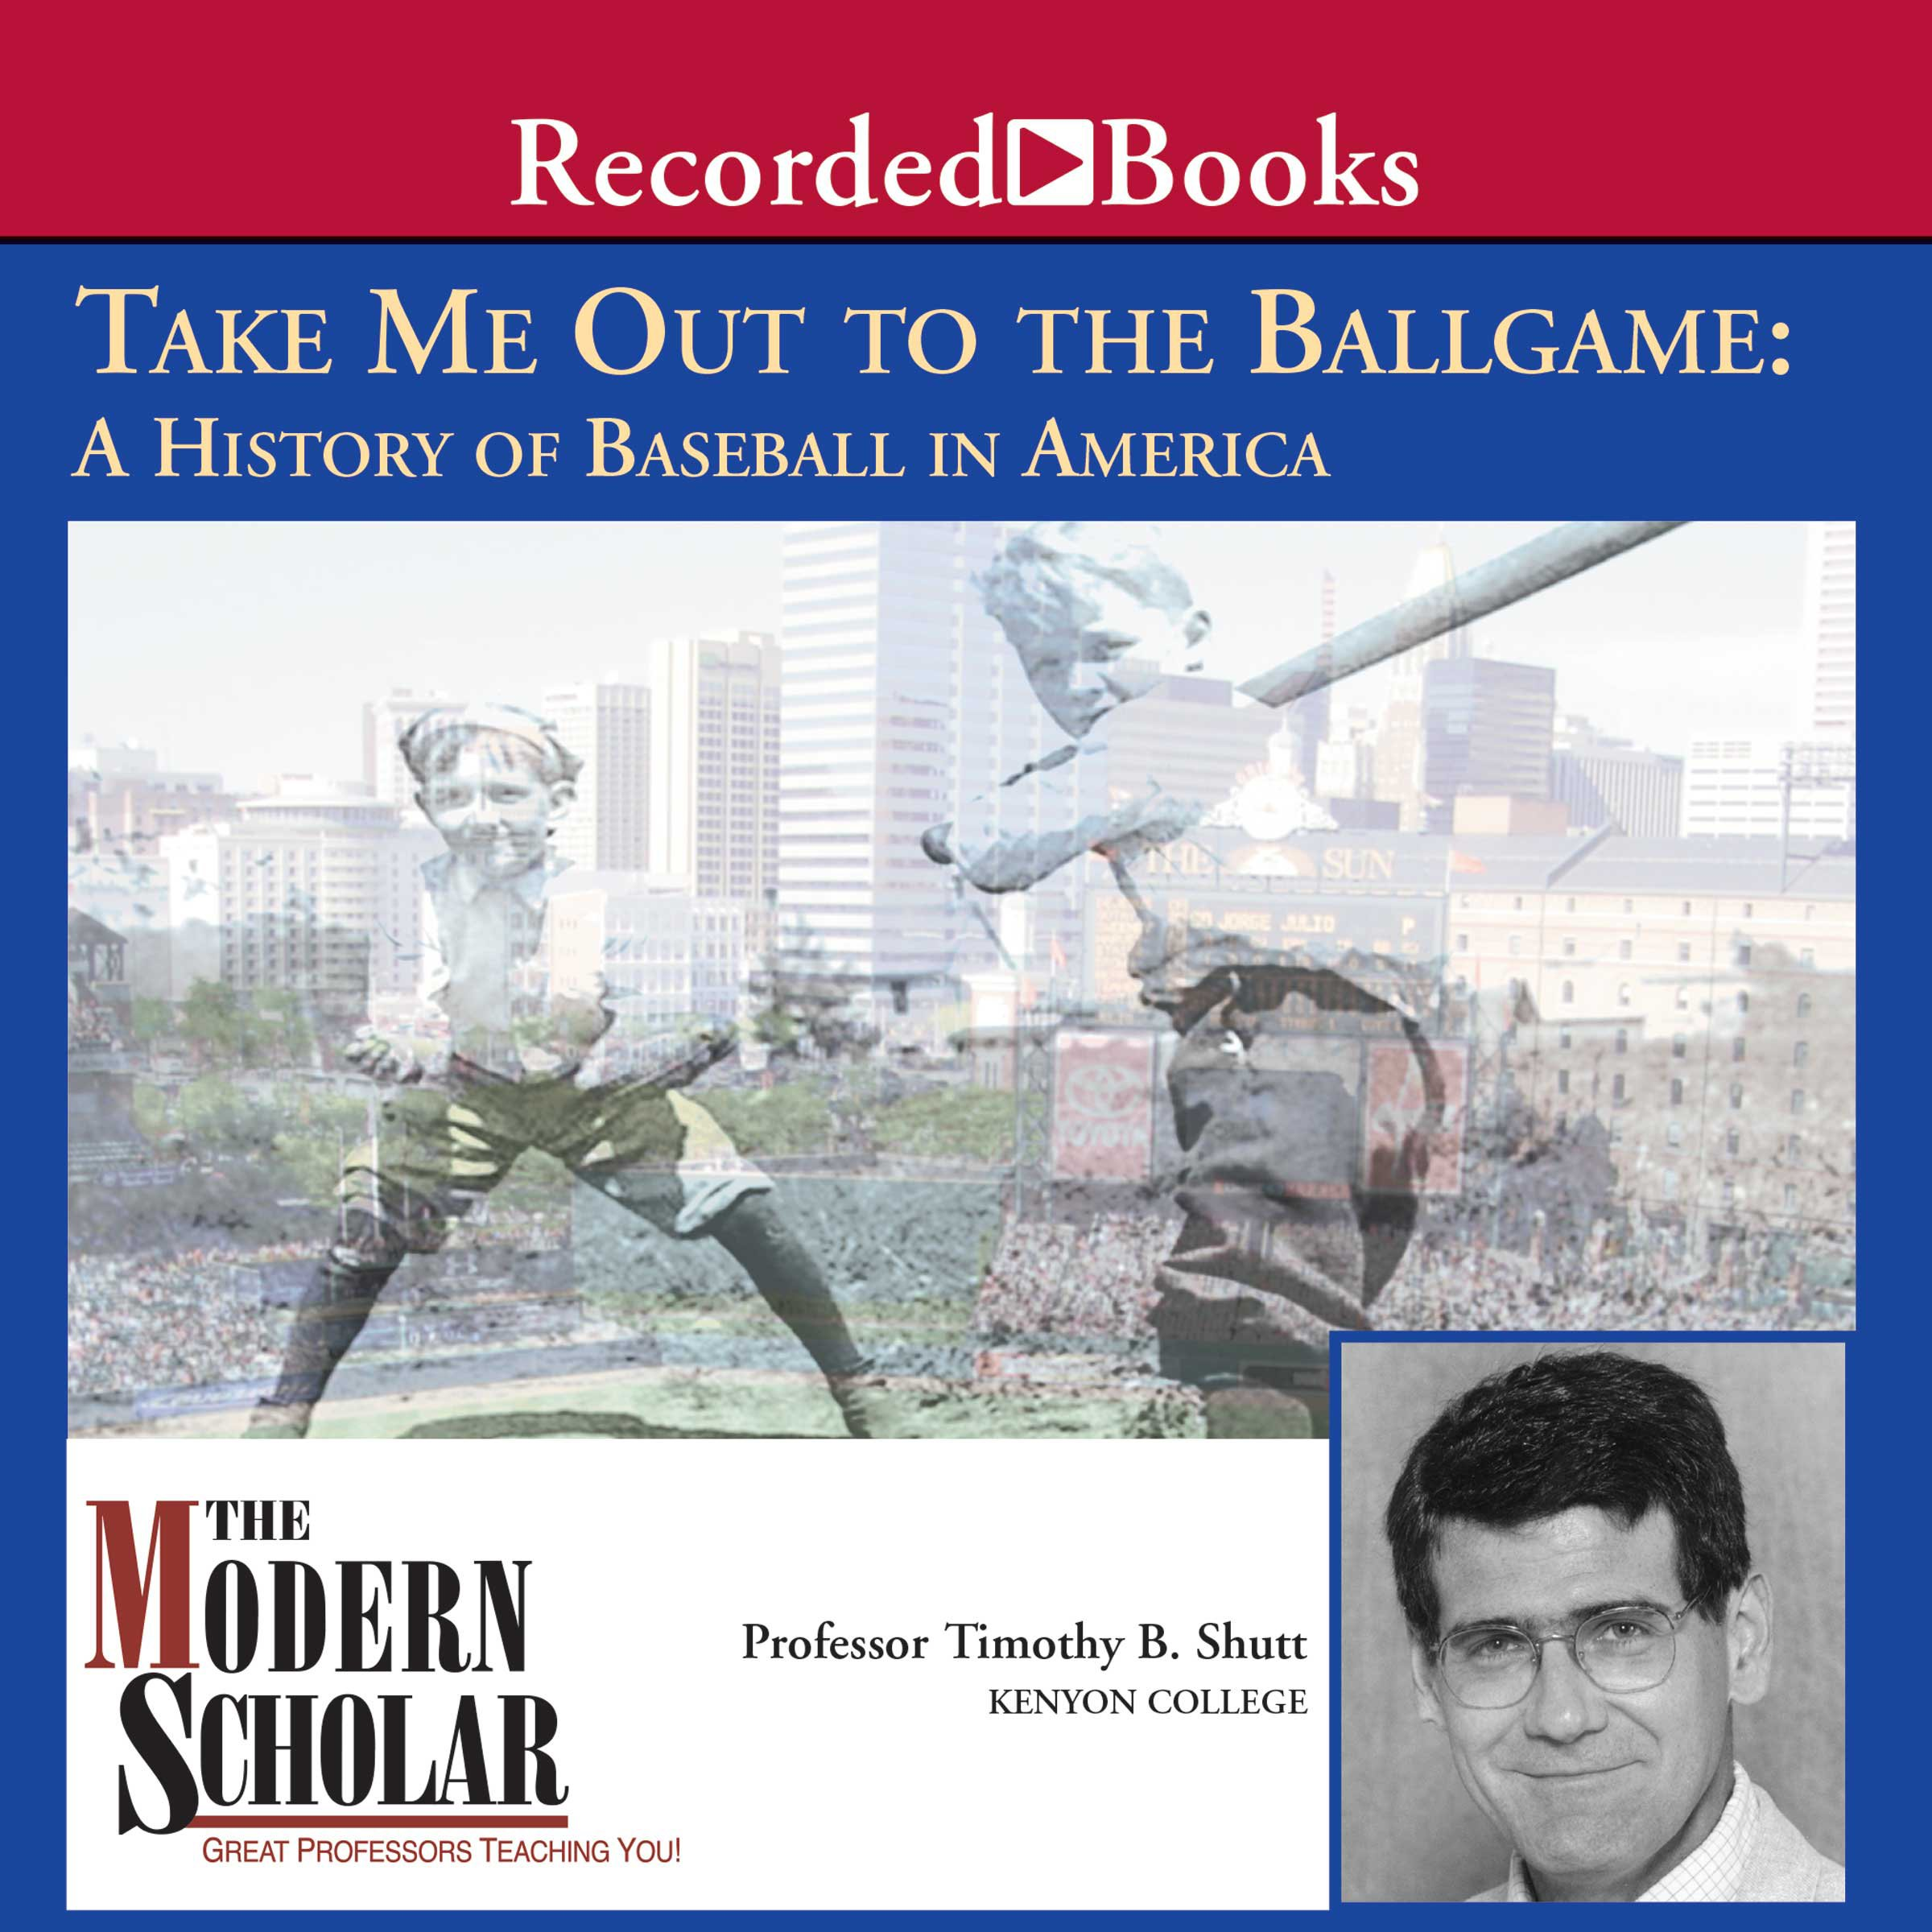 The Modern Scholar: Take Me Out to the Ballgame: A History of Baseball in America by Recorded Books